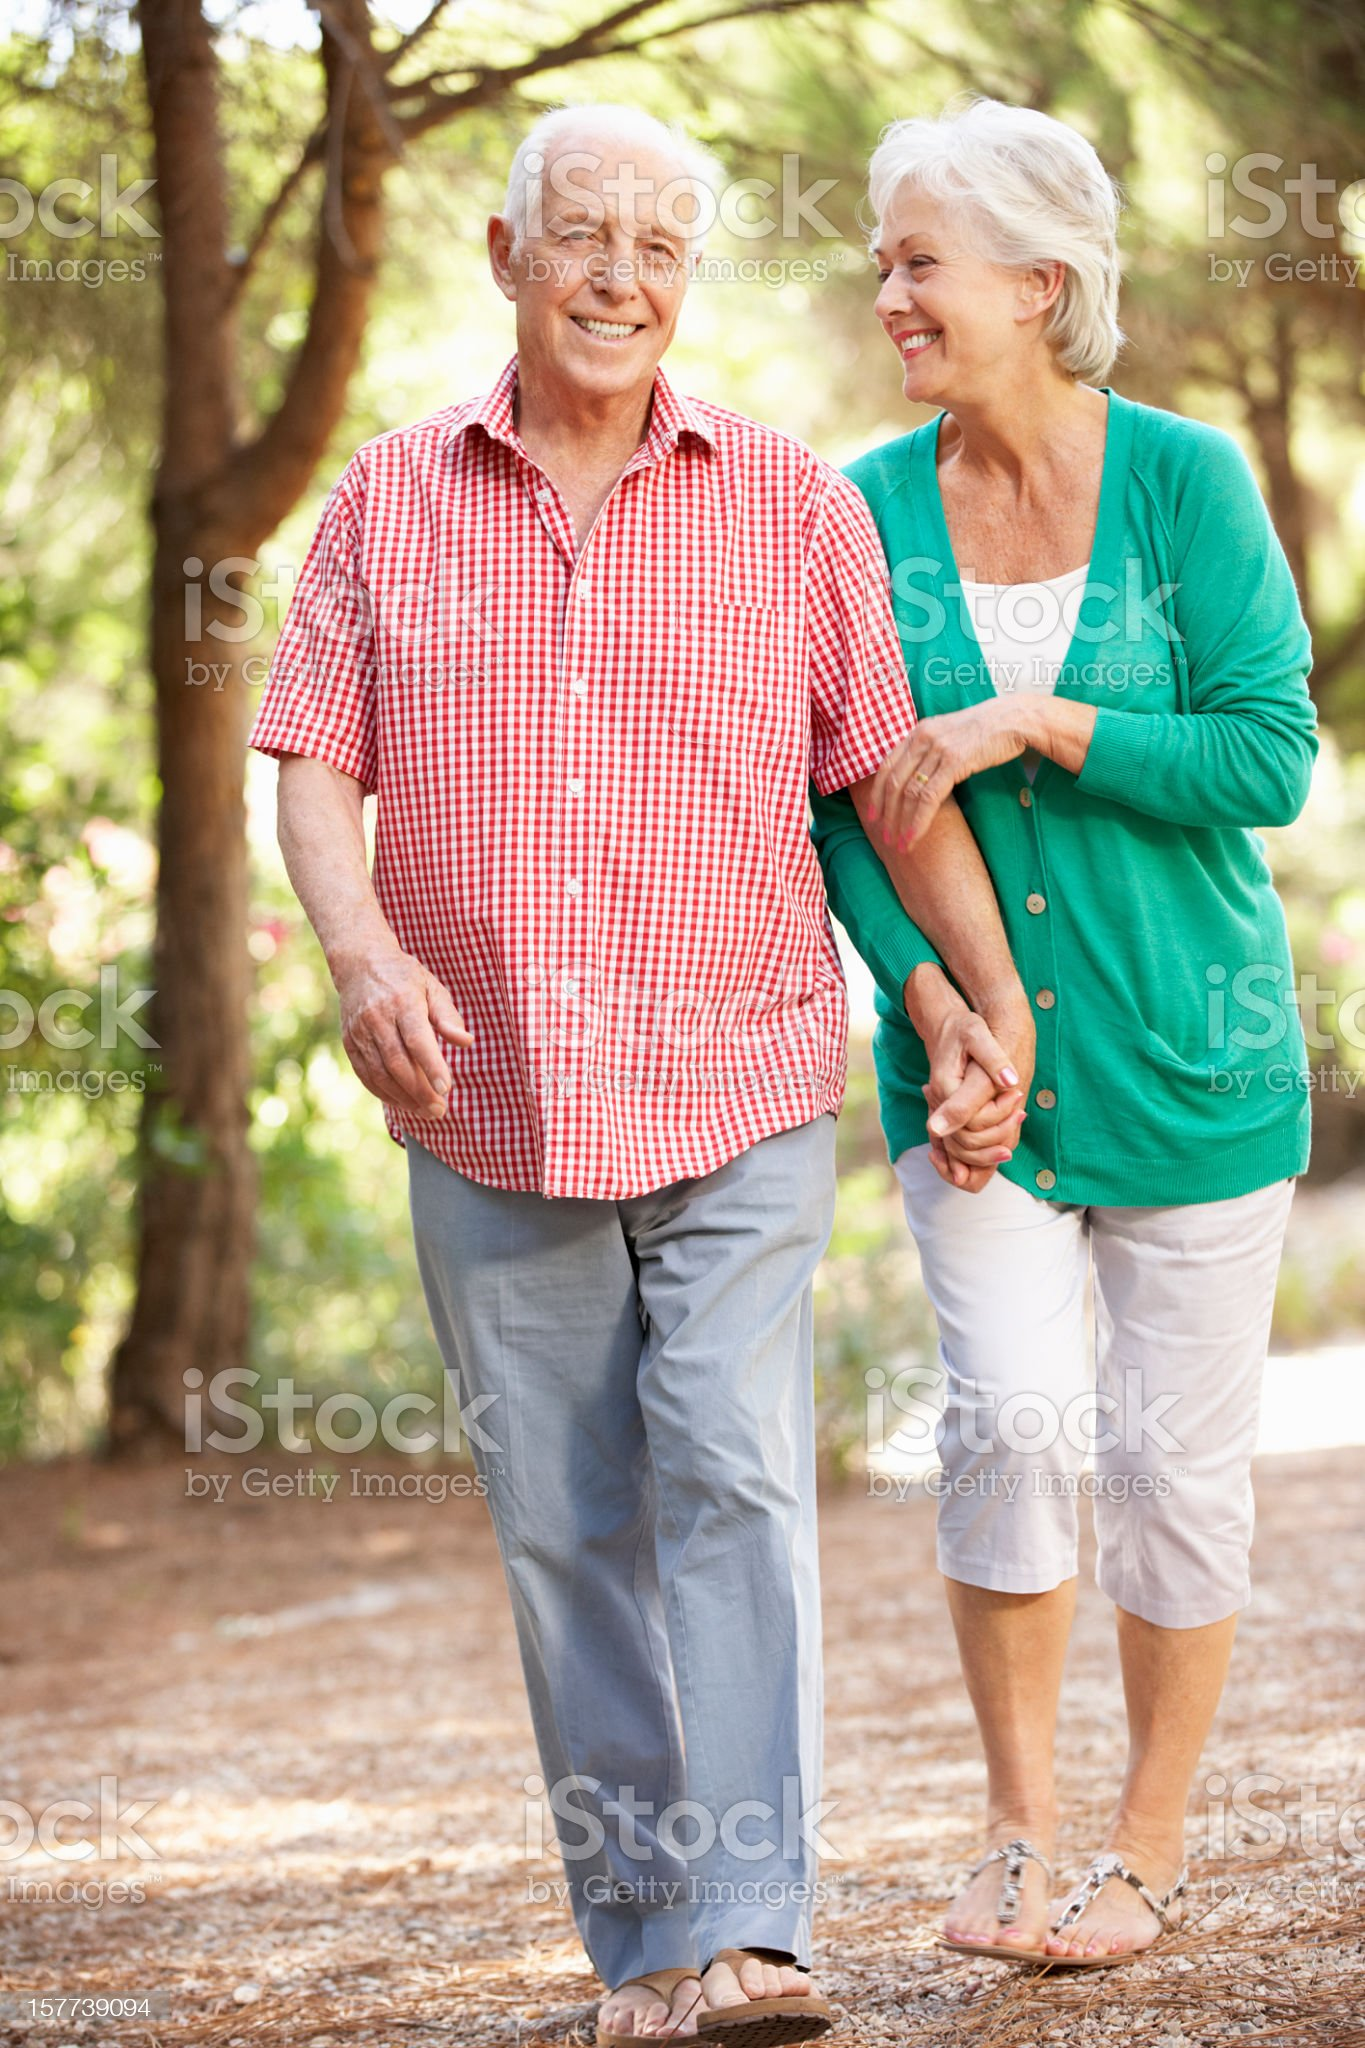 Senior Couple Walking In Countryside Together royalty-free stock photo